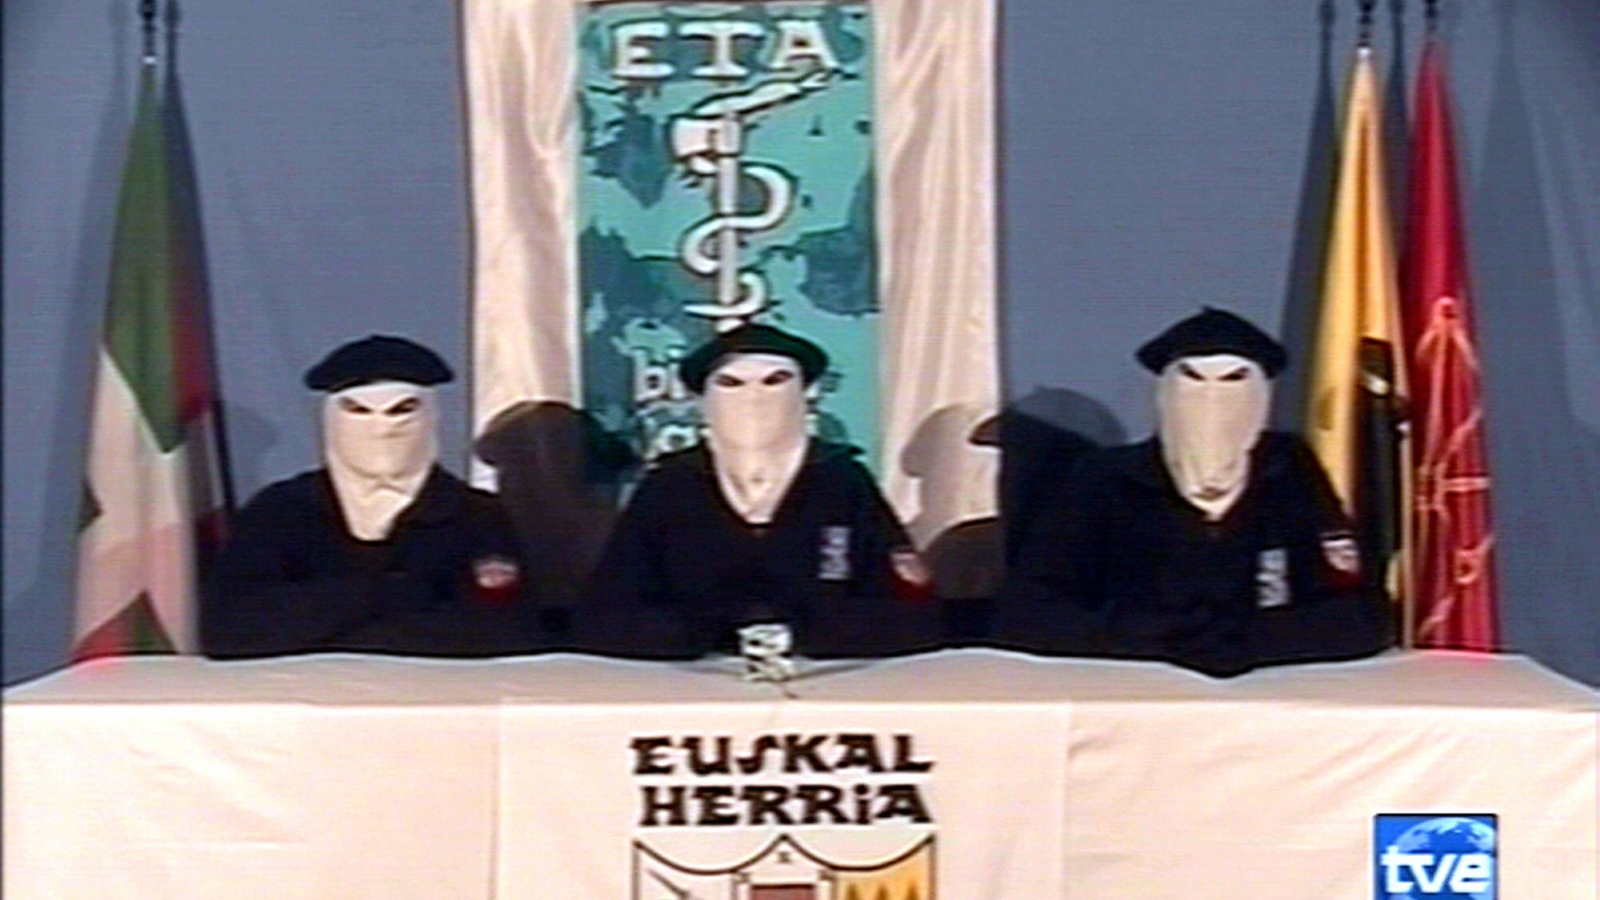 ETA terrorists on Spanish TV